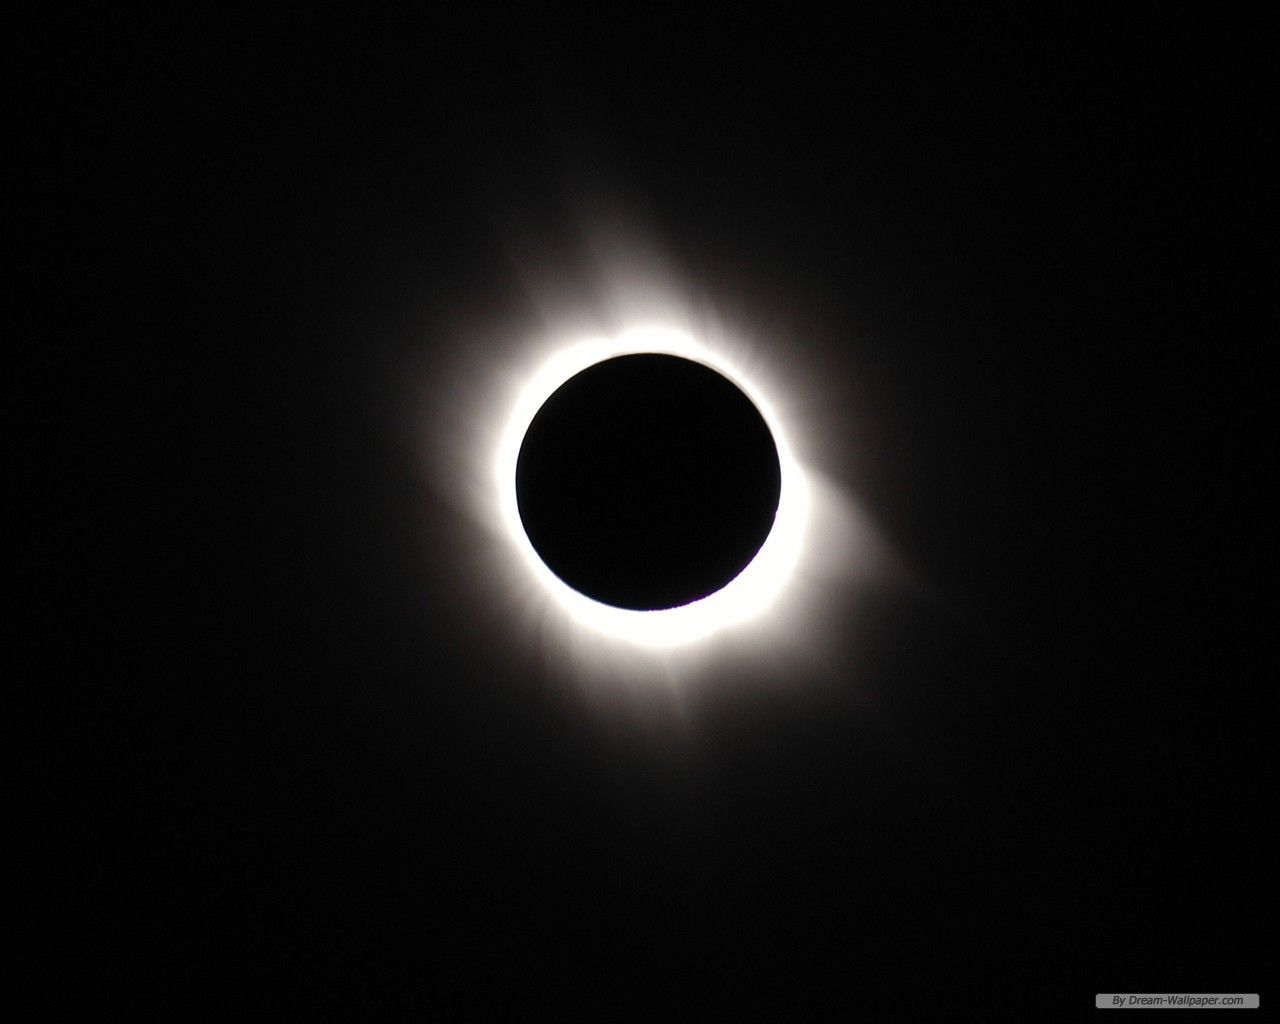 Eclipse Wallpapers, Top Ranked Eclipse Wallpapers, PCZE, HDQ 960×540